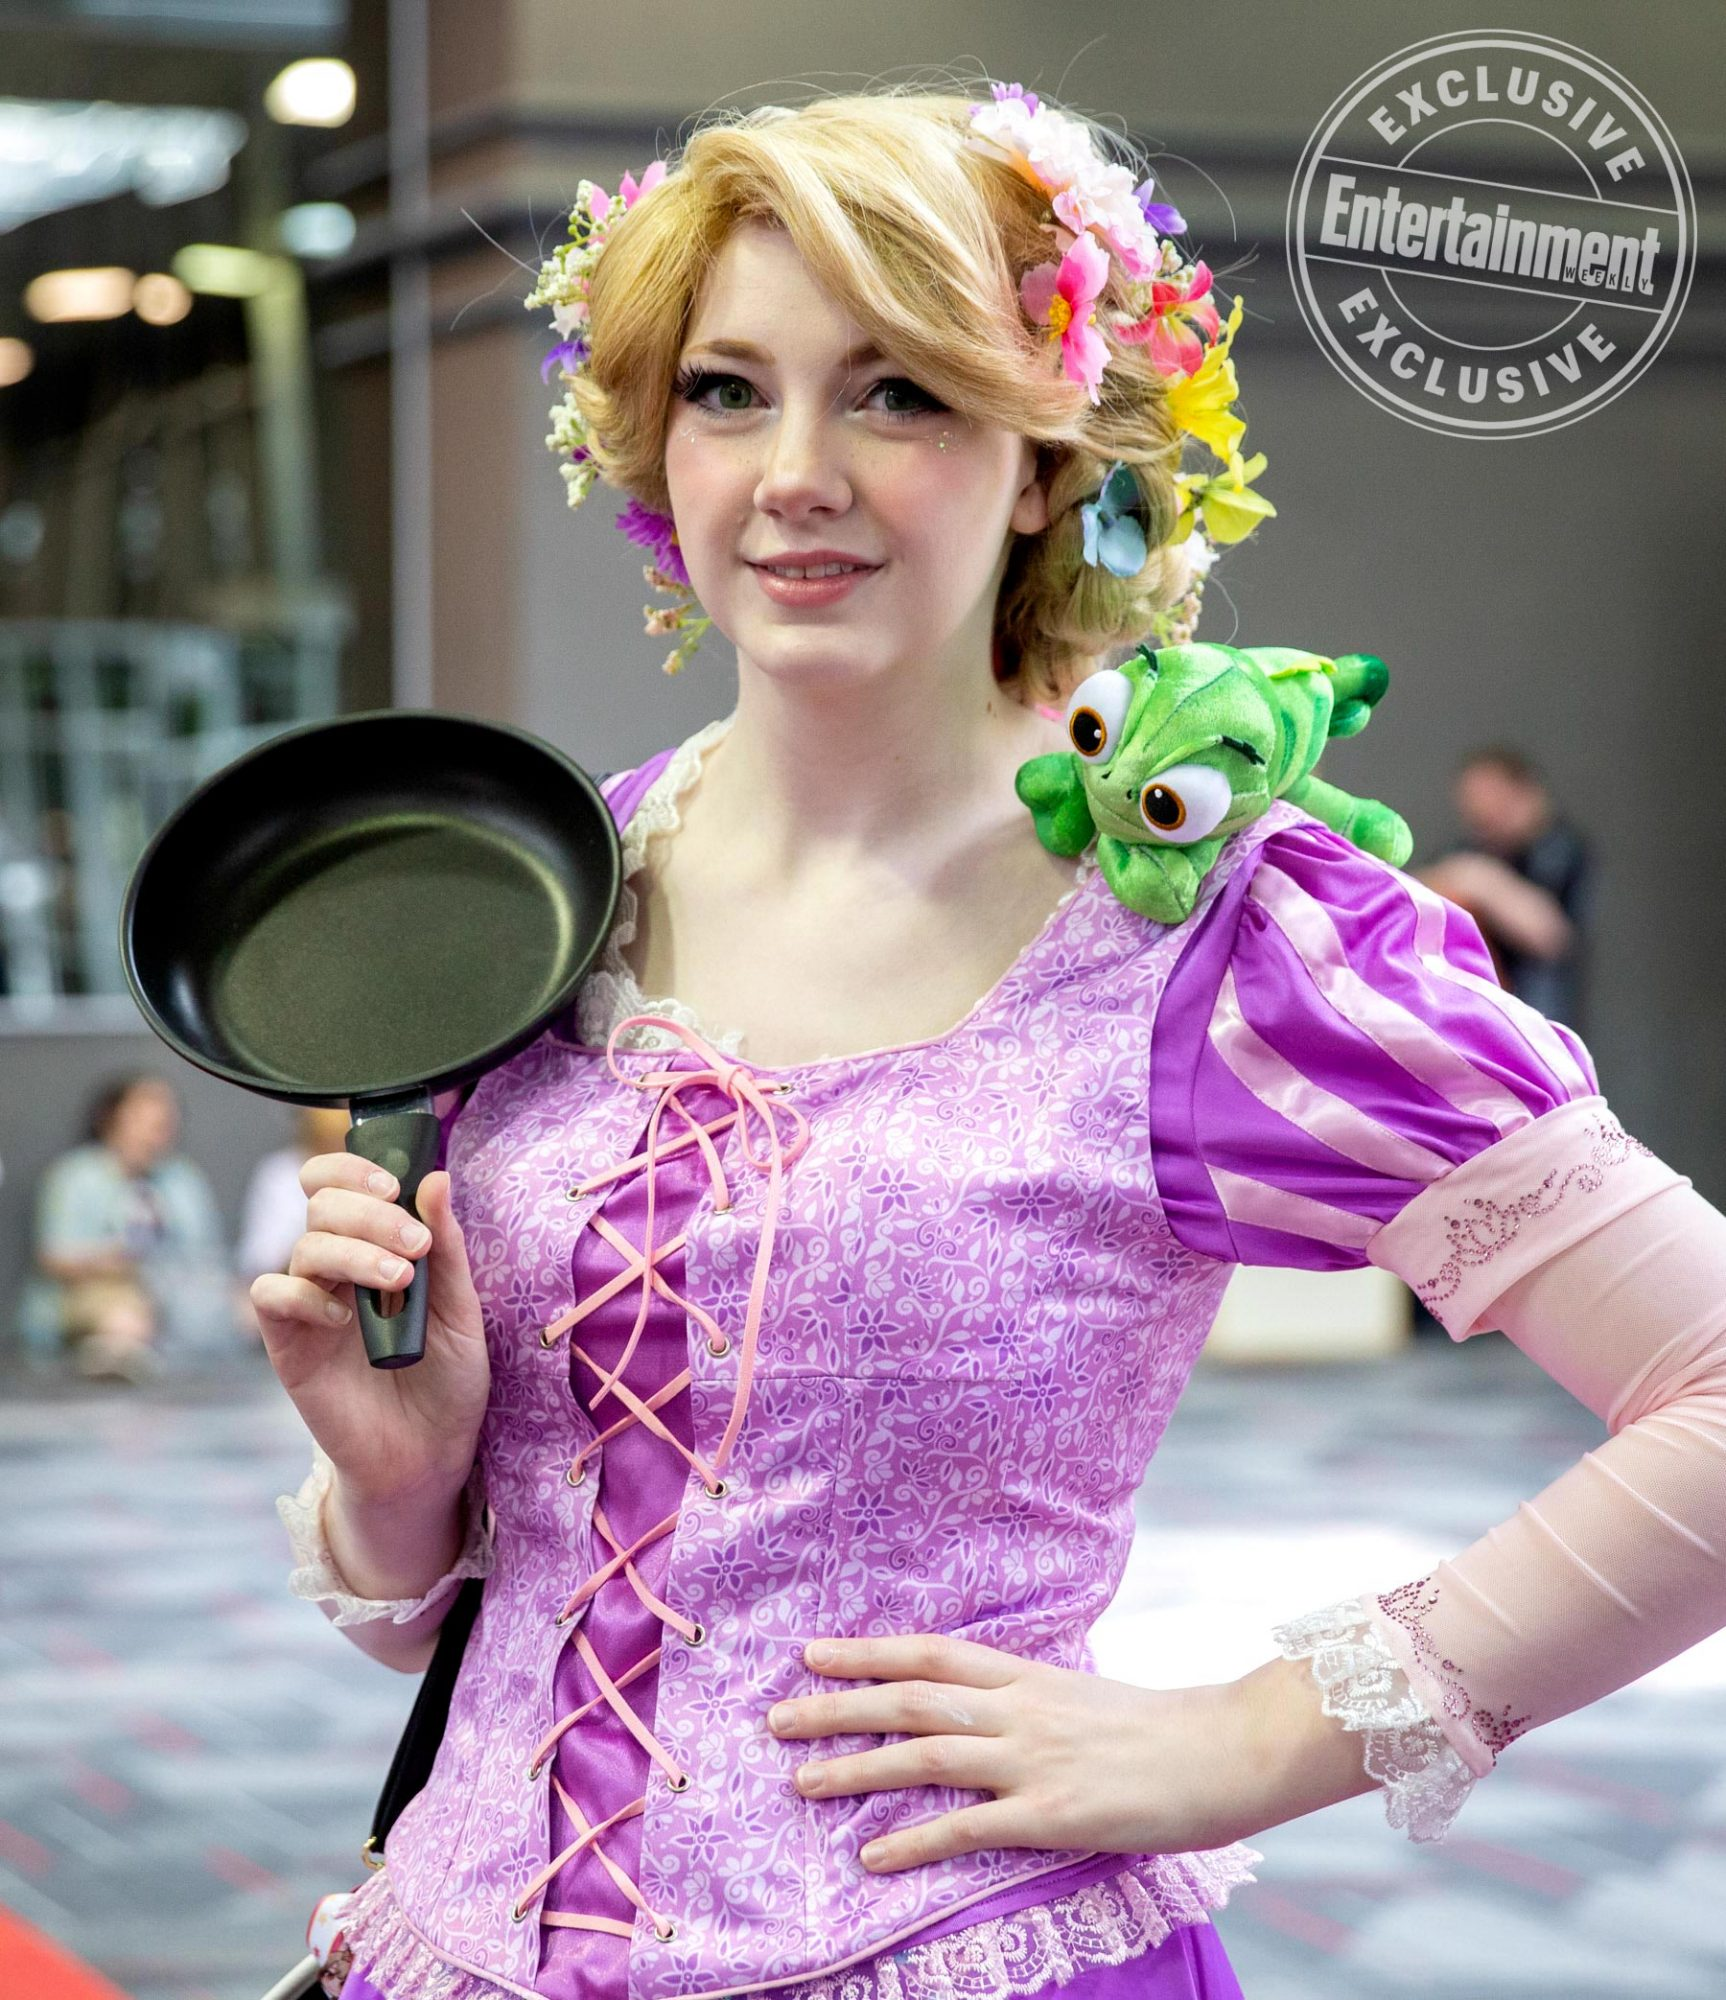 Anime Central 2019 cosplayers photographed on May 18th and 19th in Chicago, IL by Chris Cosgrove for Entertainment Weekly. -- Pictured: Rapunzel from Tangled cosplayer